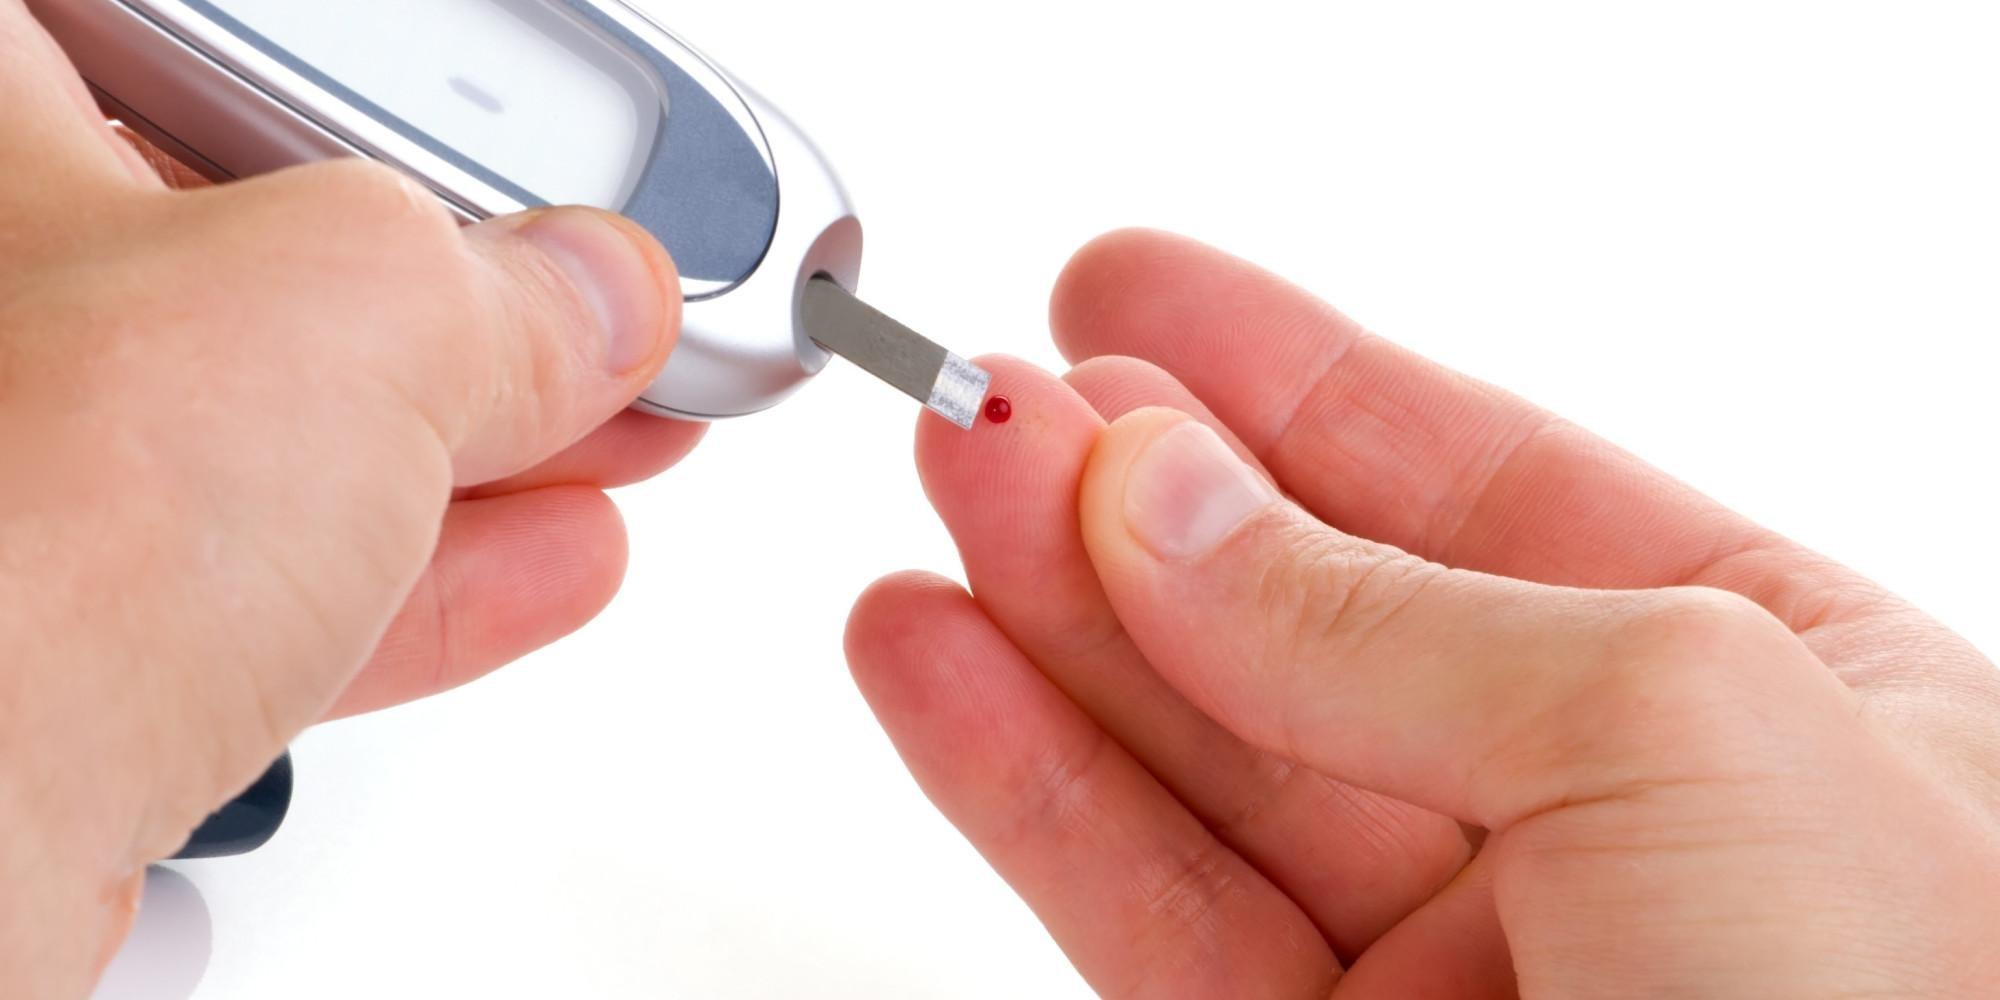 For the Last Time, I Have Type 1 Diabetes, Not Type 2 Diabetes! There's a Big Difference